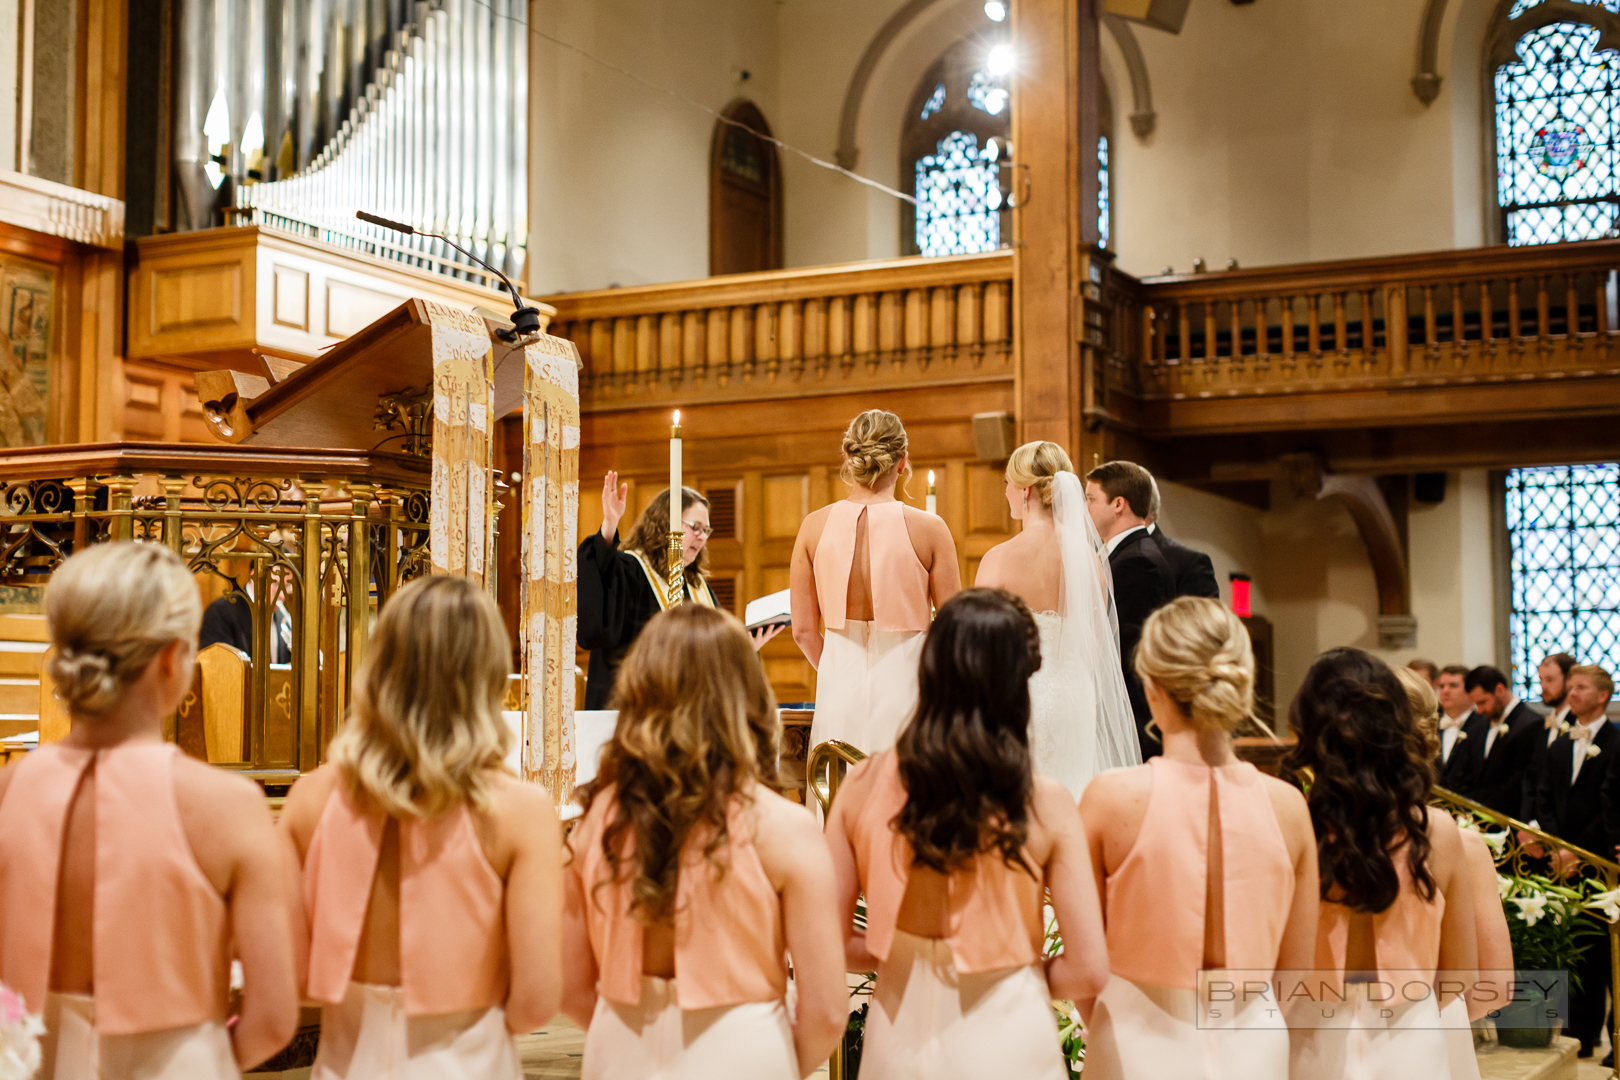 six bridesmaids with a variety of styled hair support their bride at cathedral in New York City